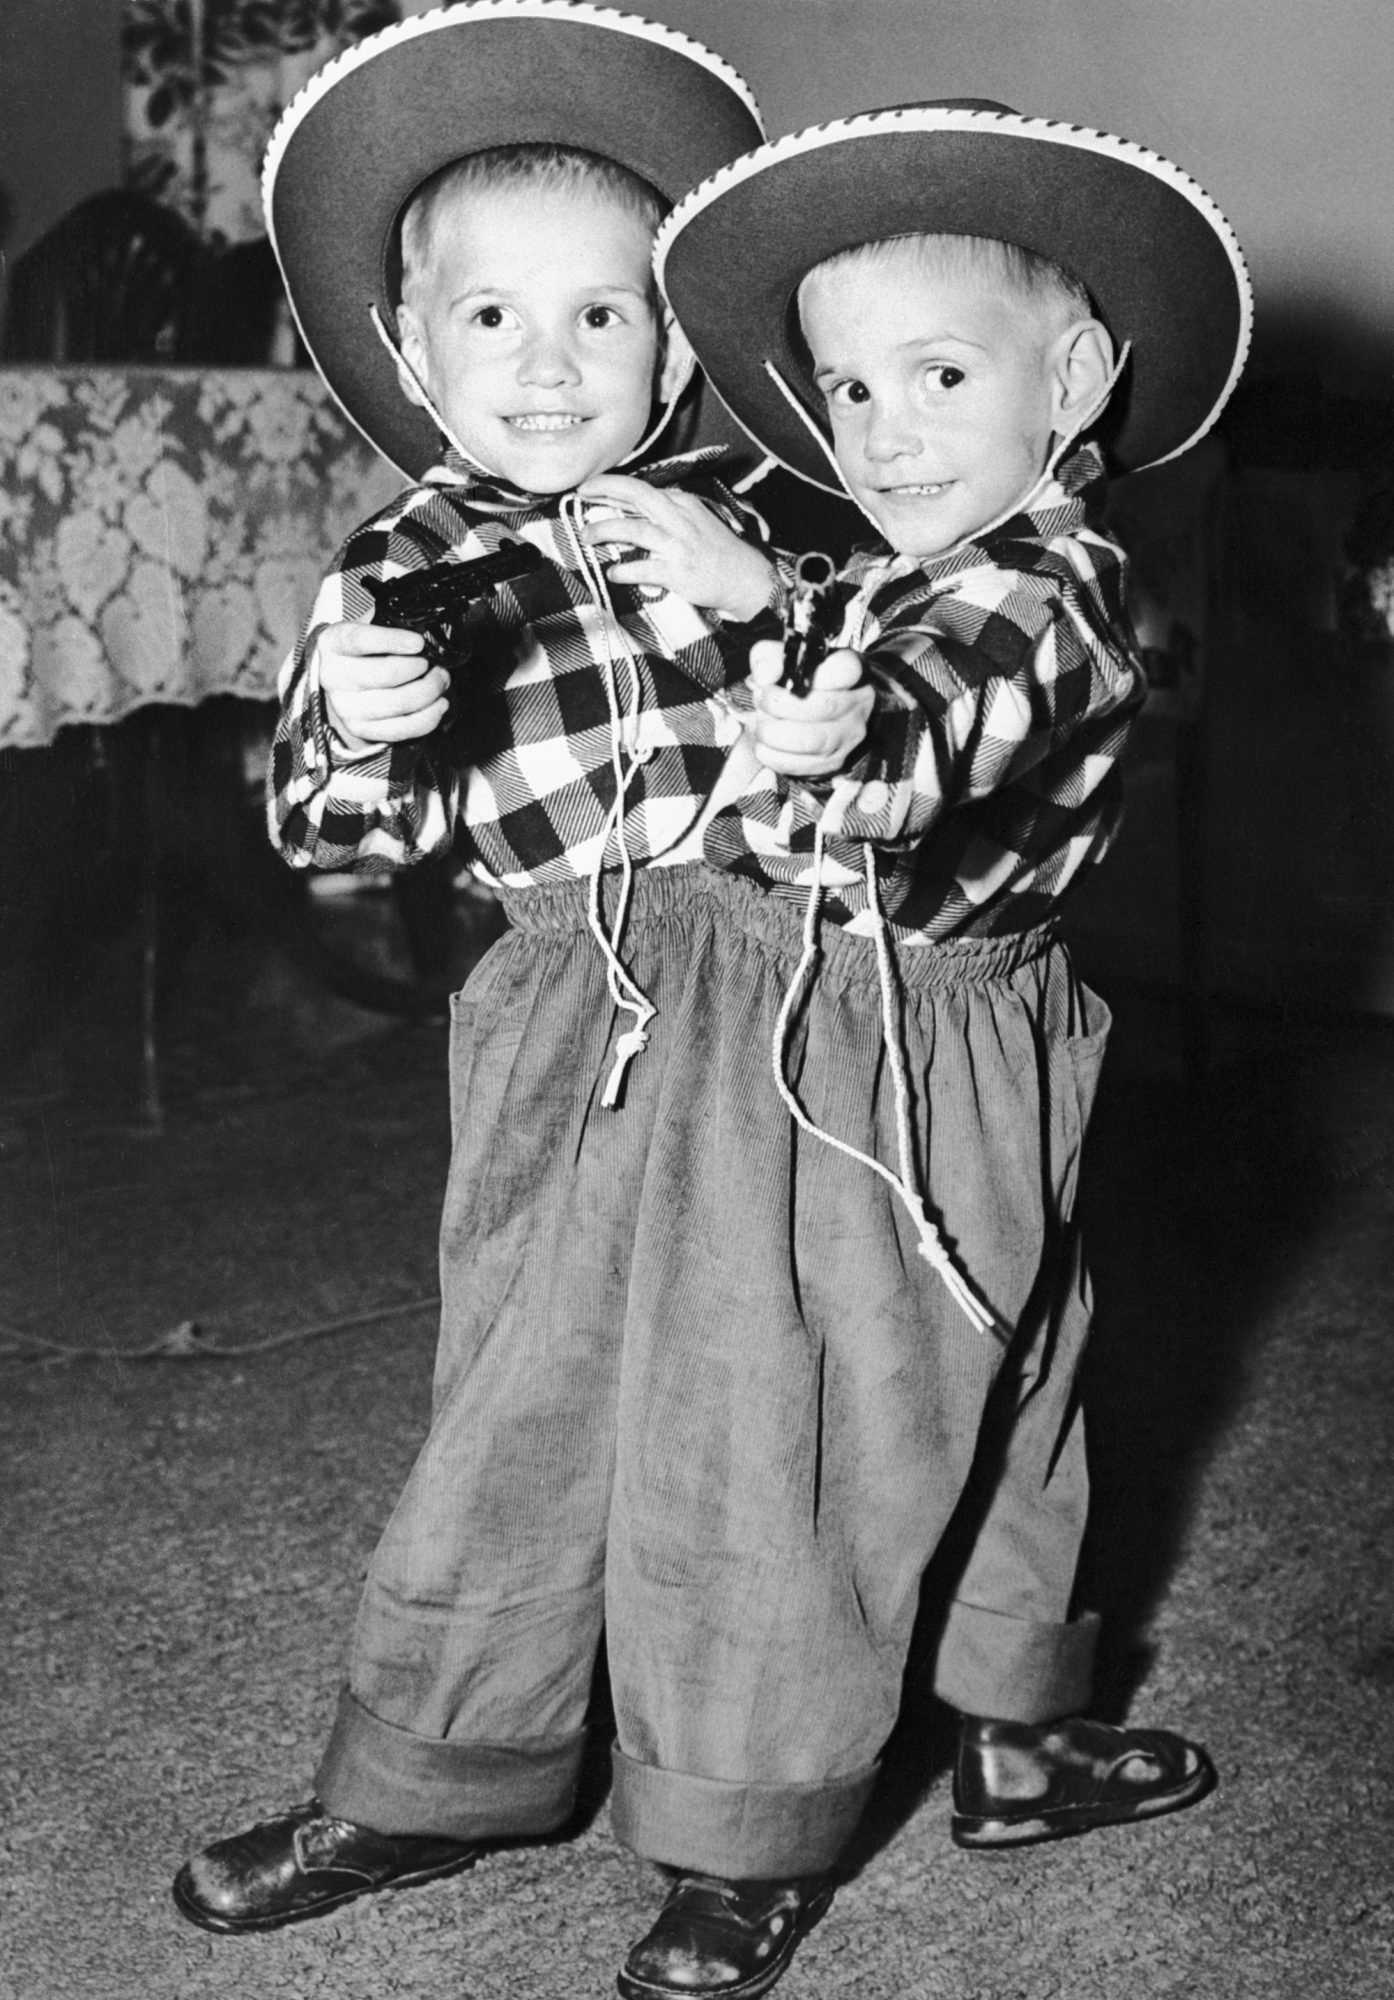 Ronnie and Donnie Galyon